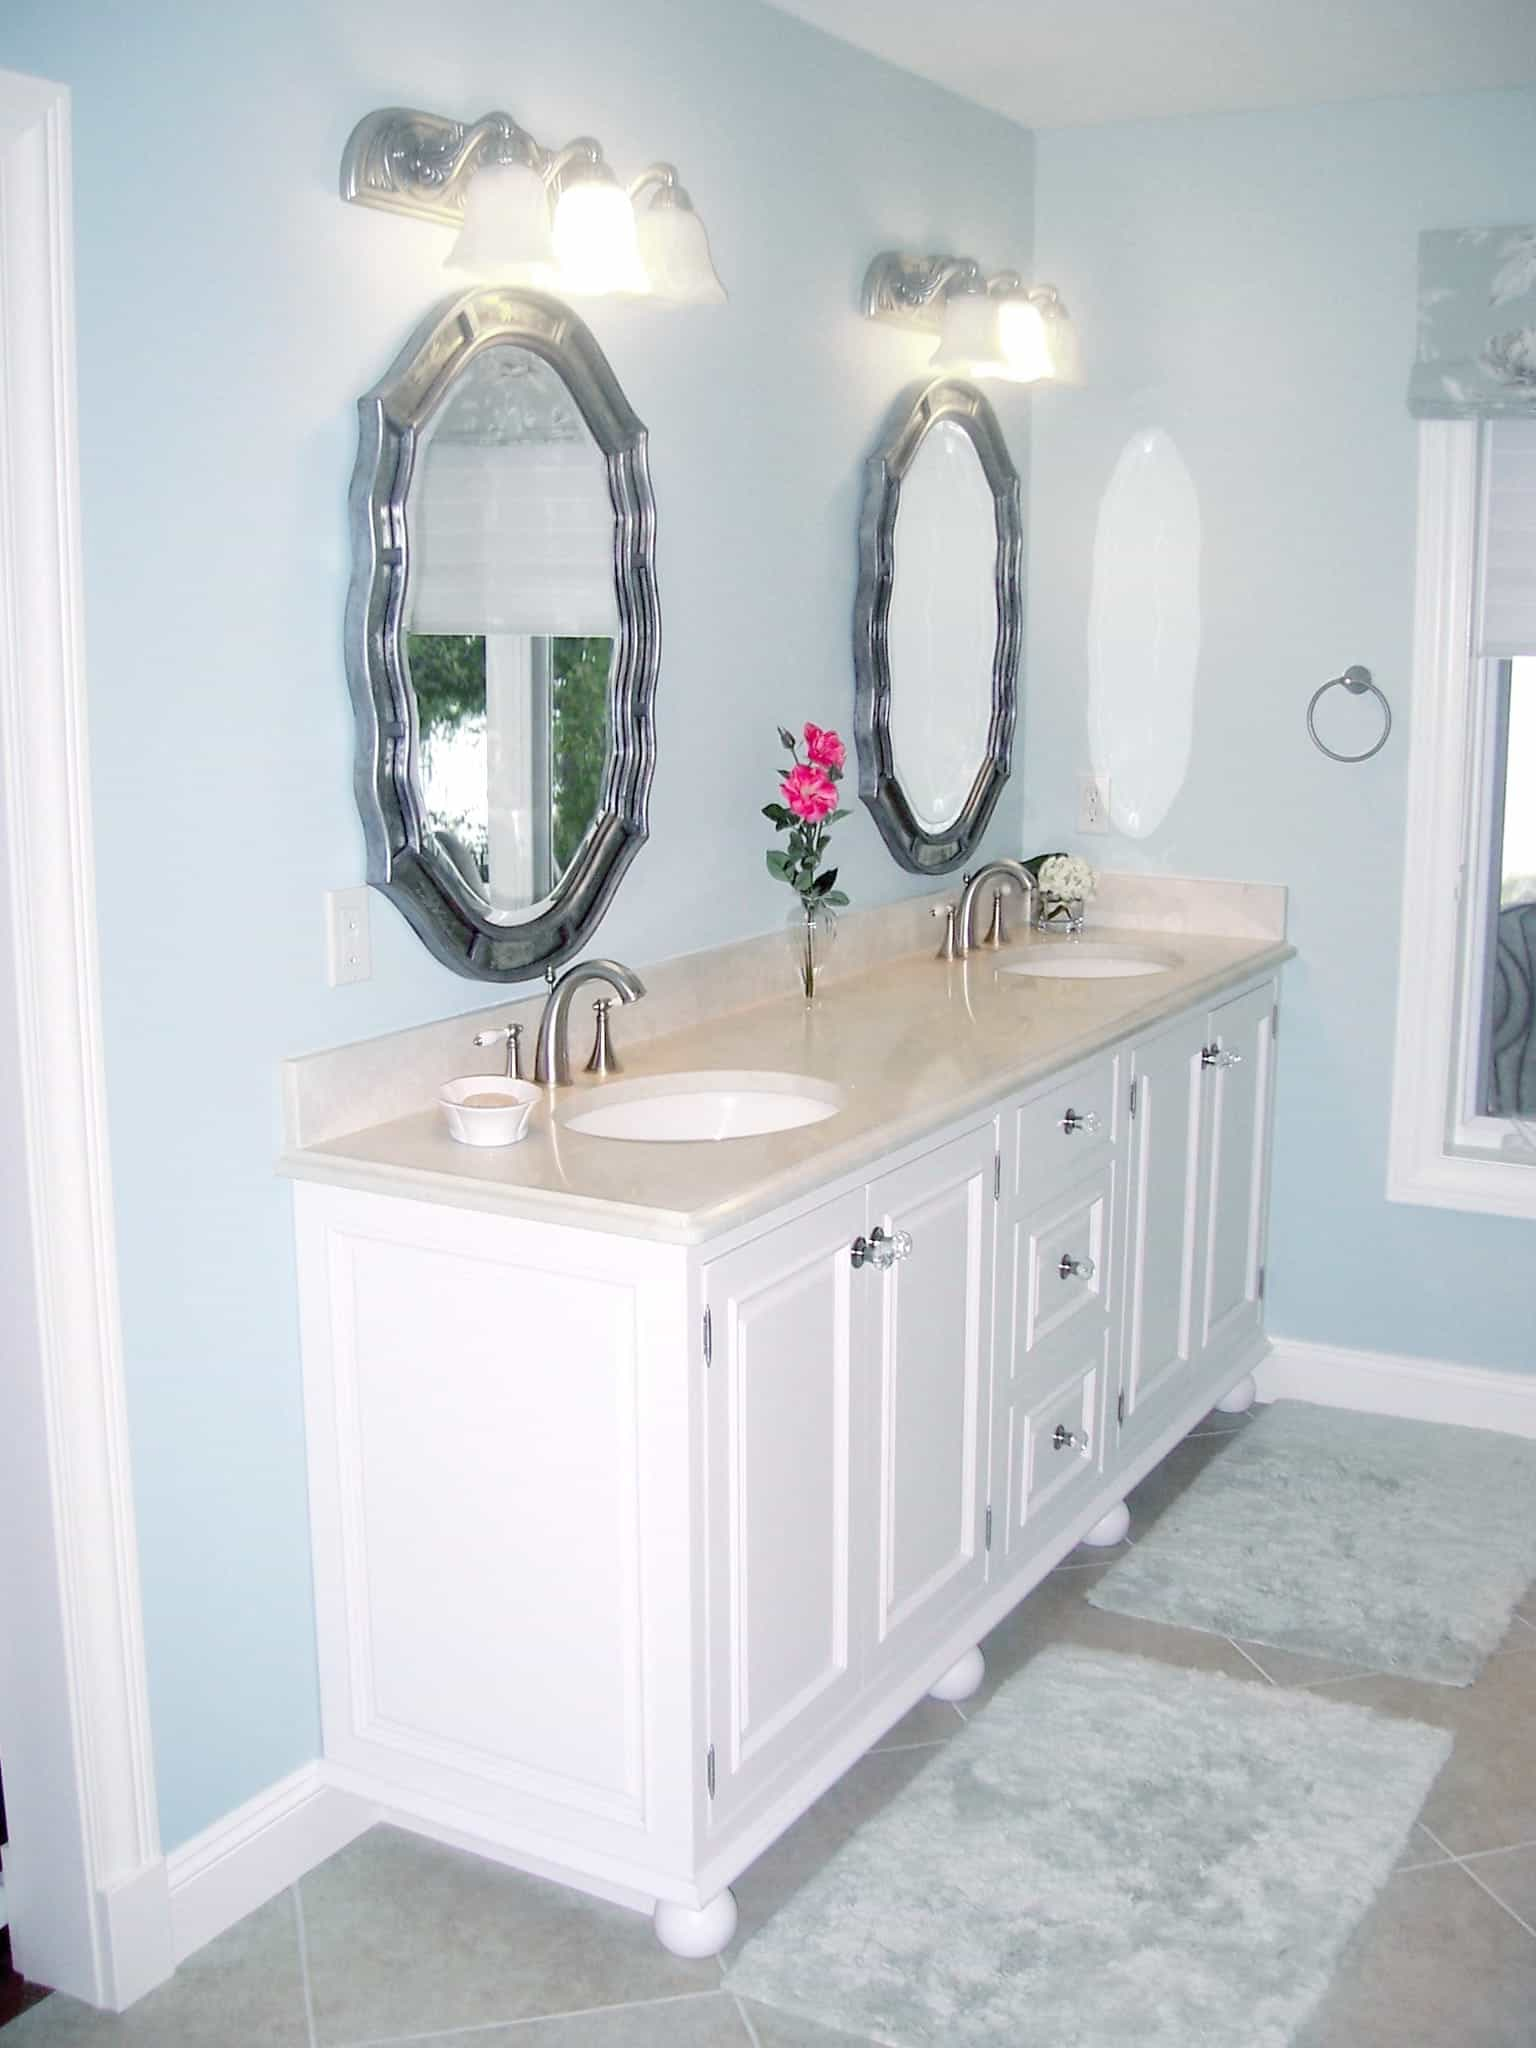 Blue Modern Bathroom With Double Vintage Vanity (Image 3 of 12)